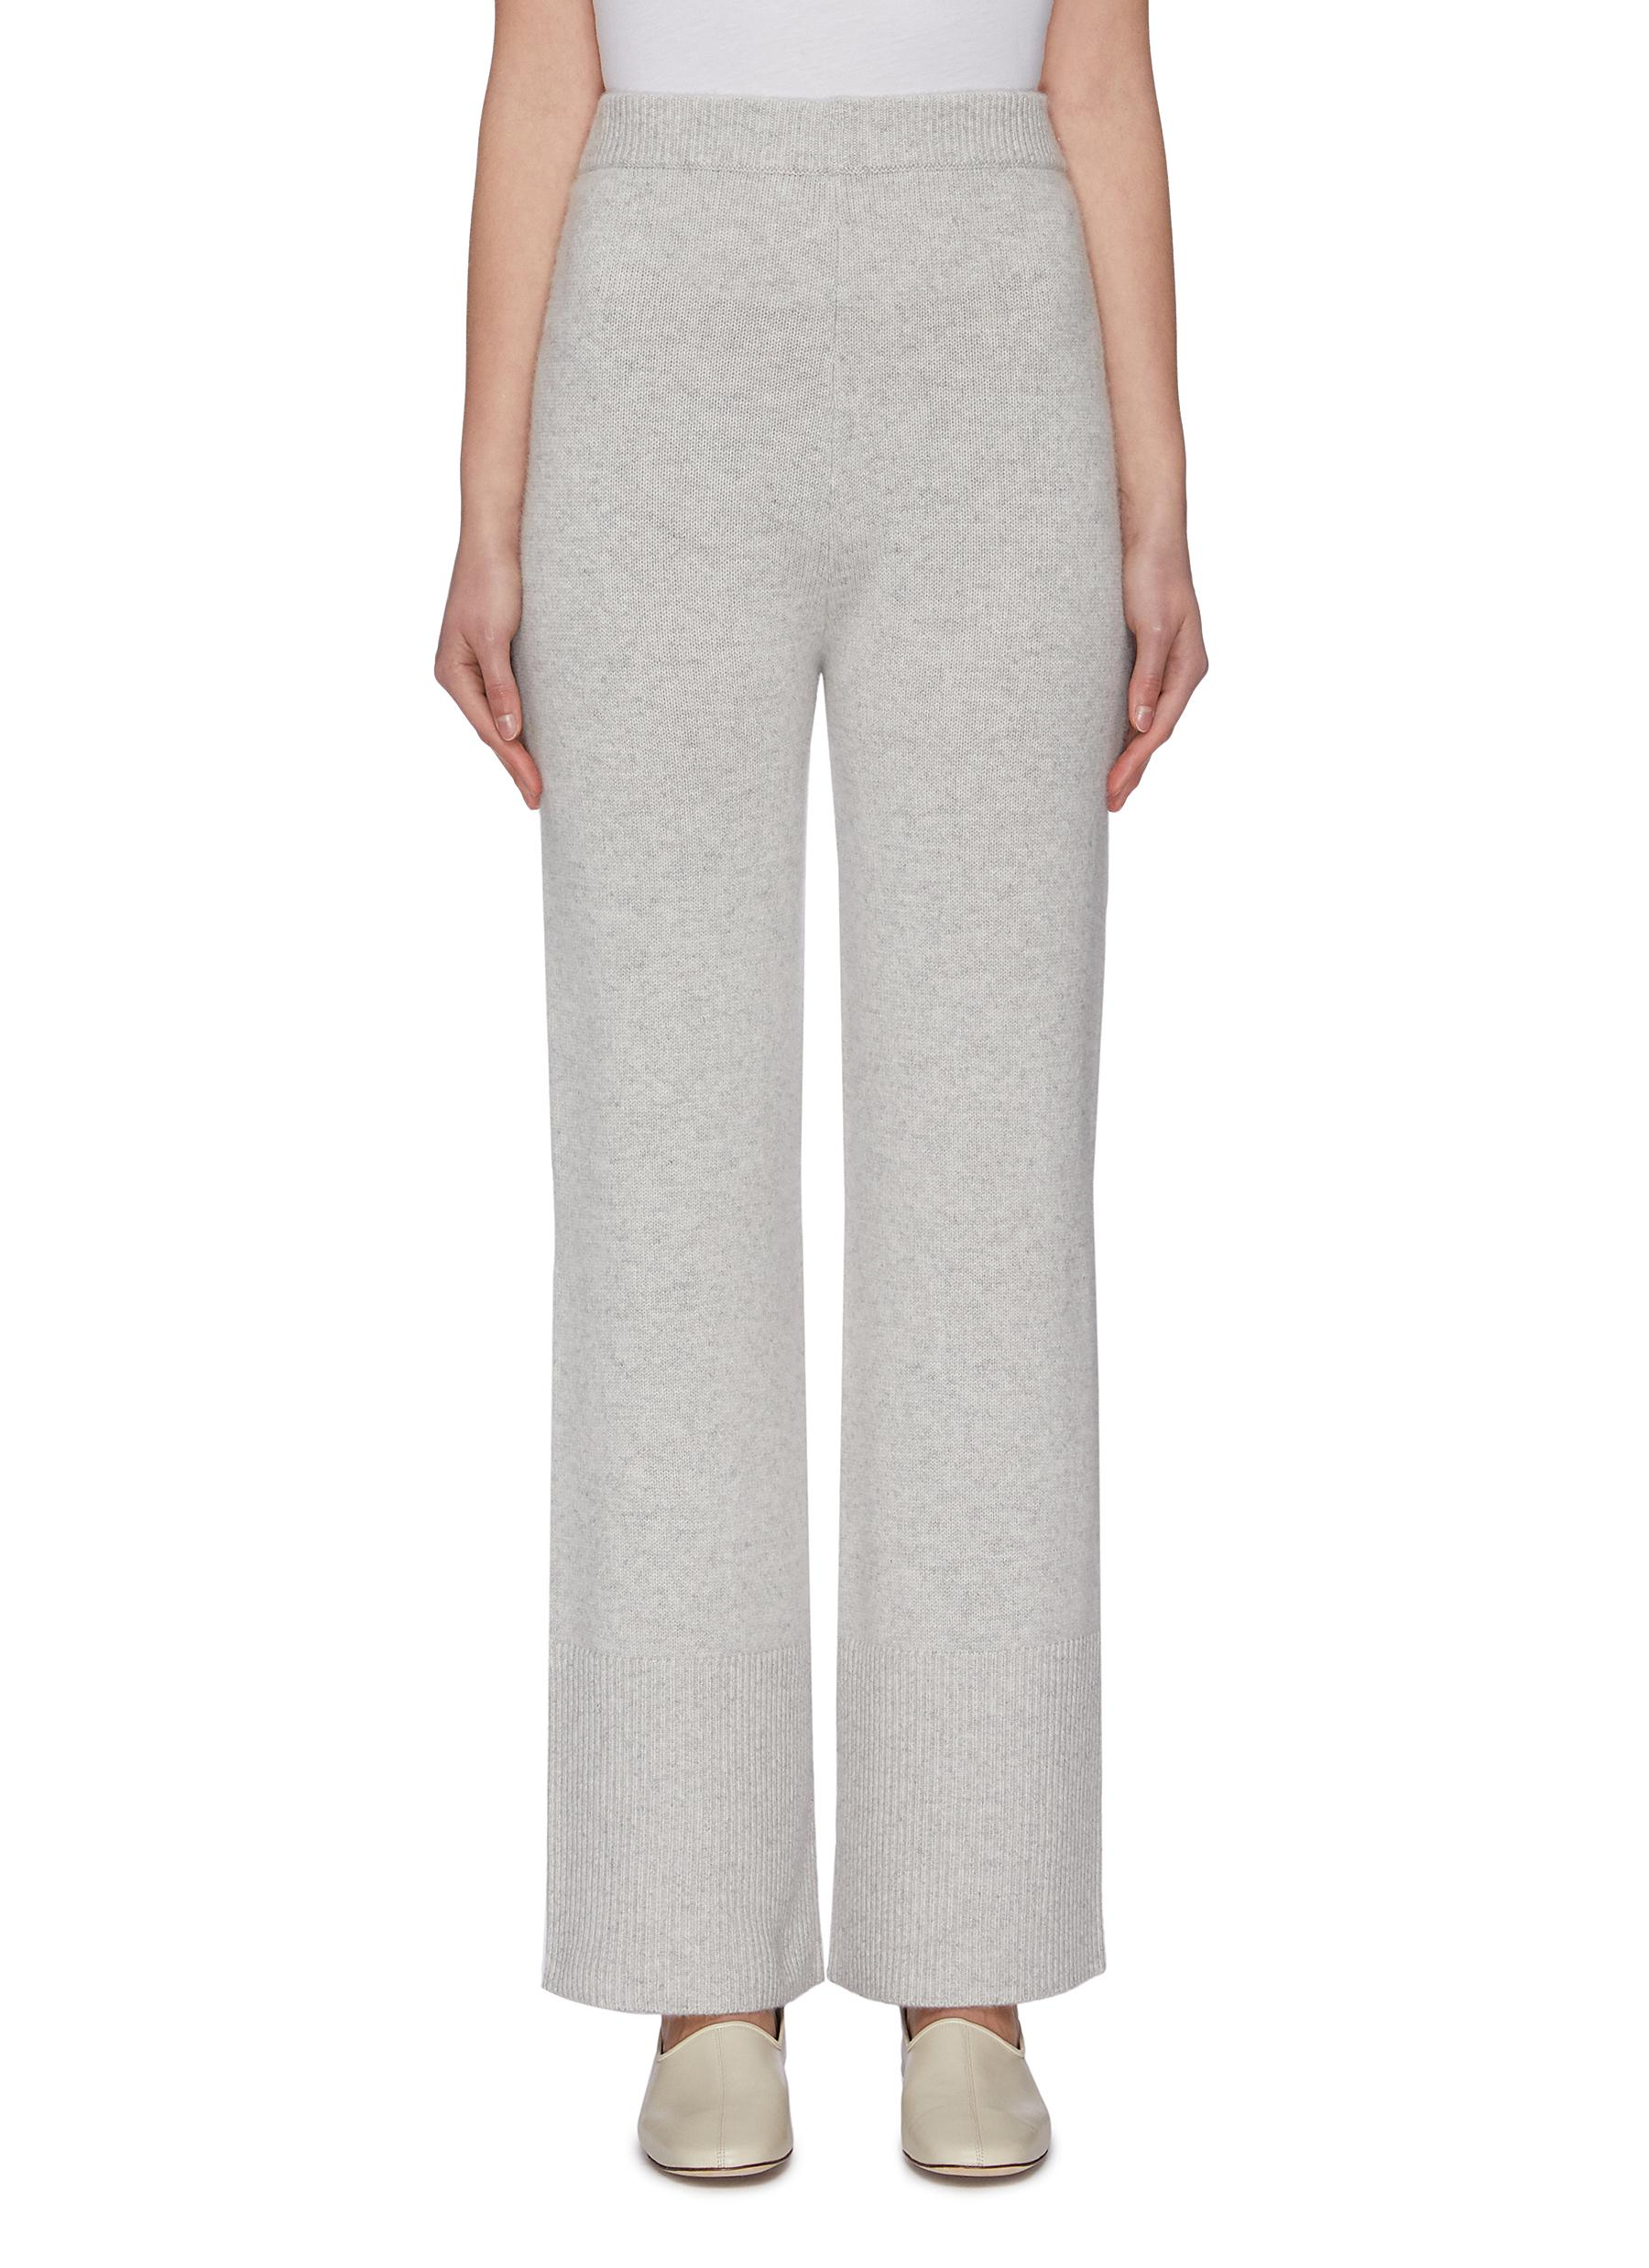 Buy Joseph Pants & Shorts Wide leg cashmere knit pants